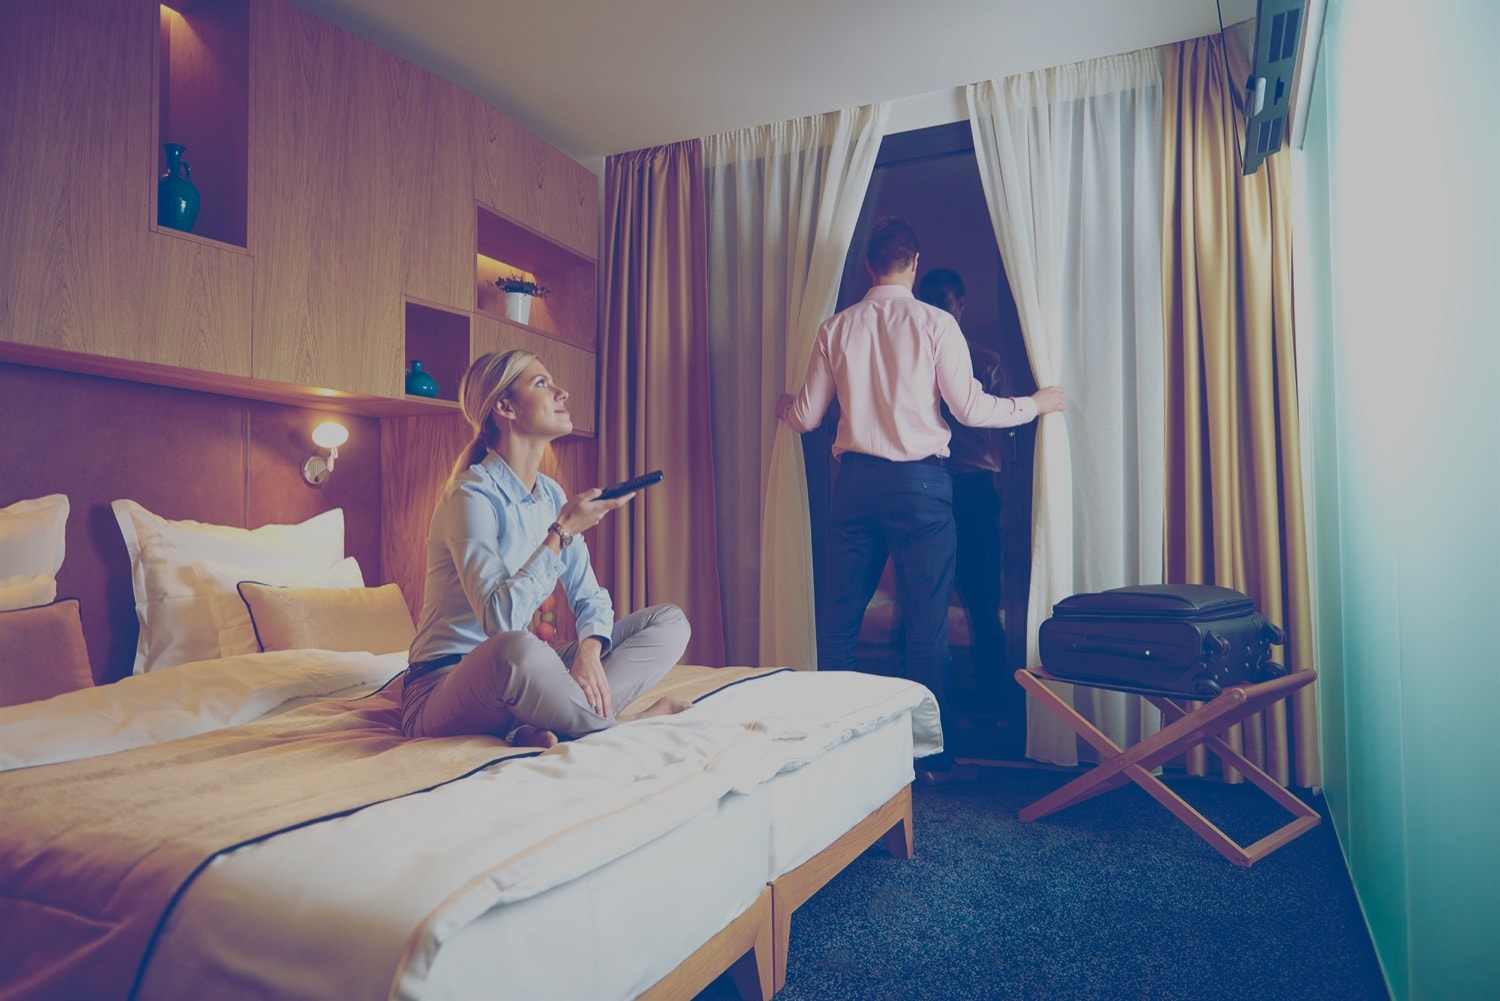 Couple in a hotel room. The woman is turning on a propane-powered heater, and the man is looking out the window.